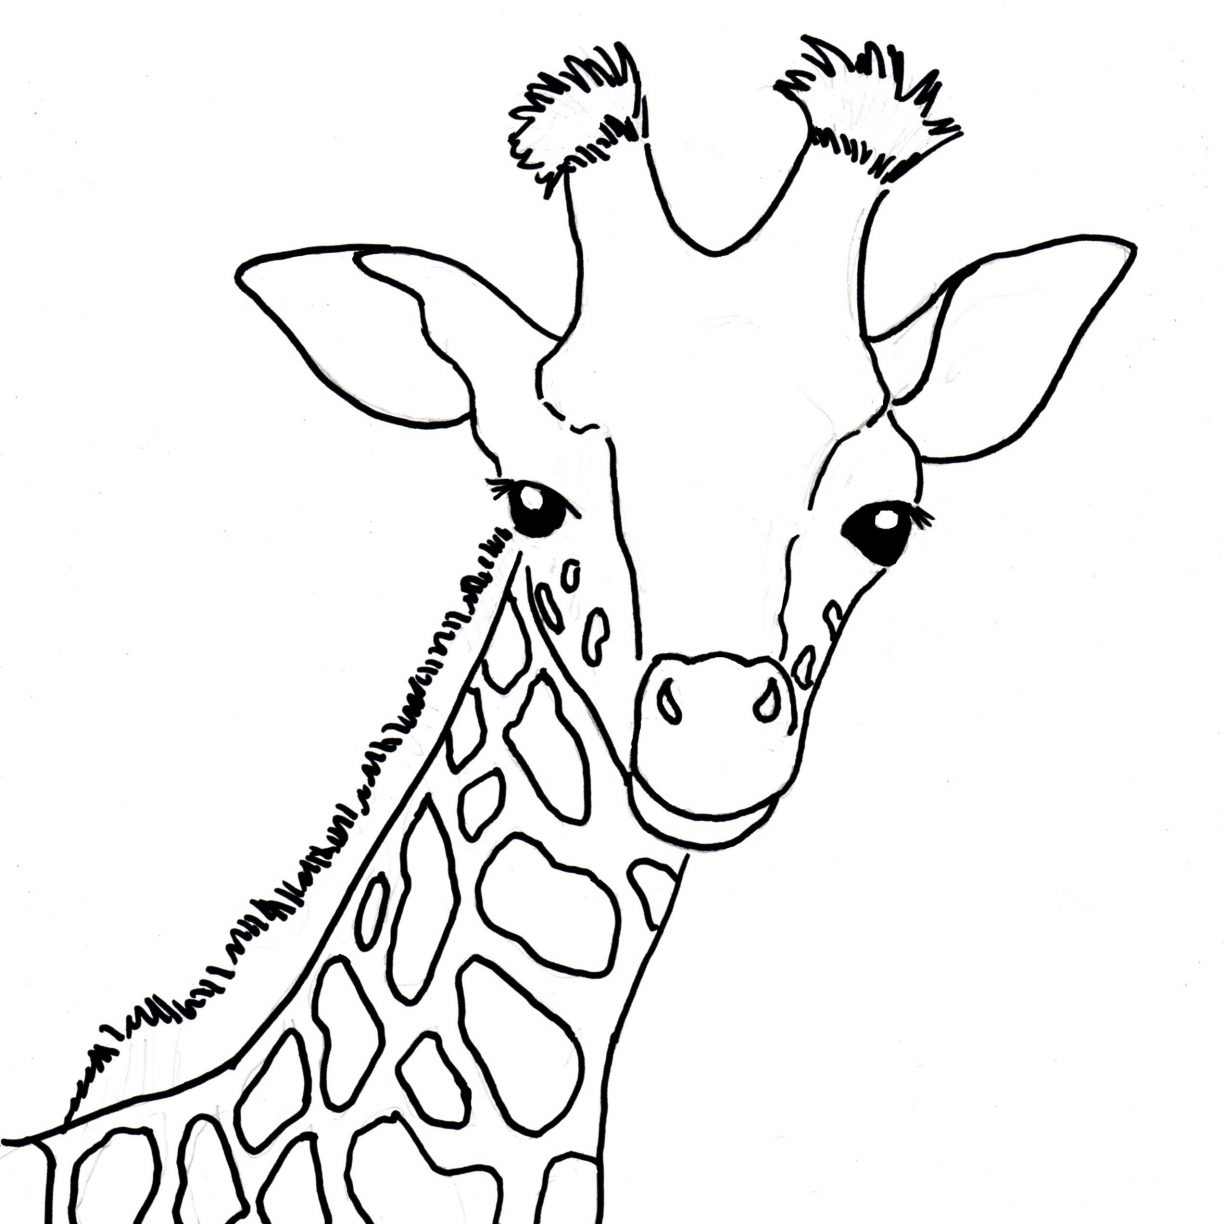 1224x1224 Marvelous Babyfe Coloring Pages Color Cute Printable Baby Giraffe